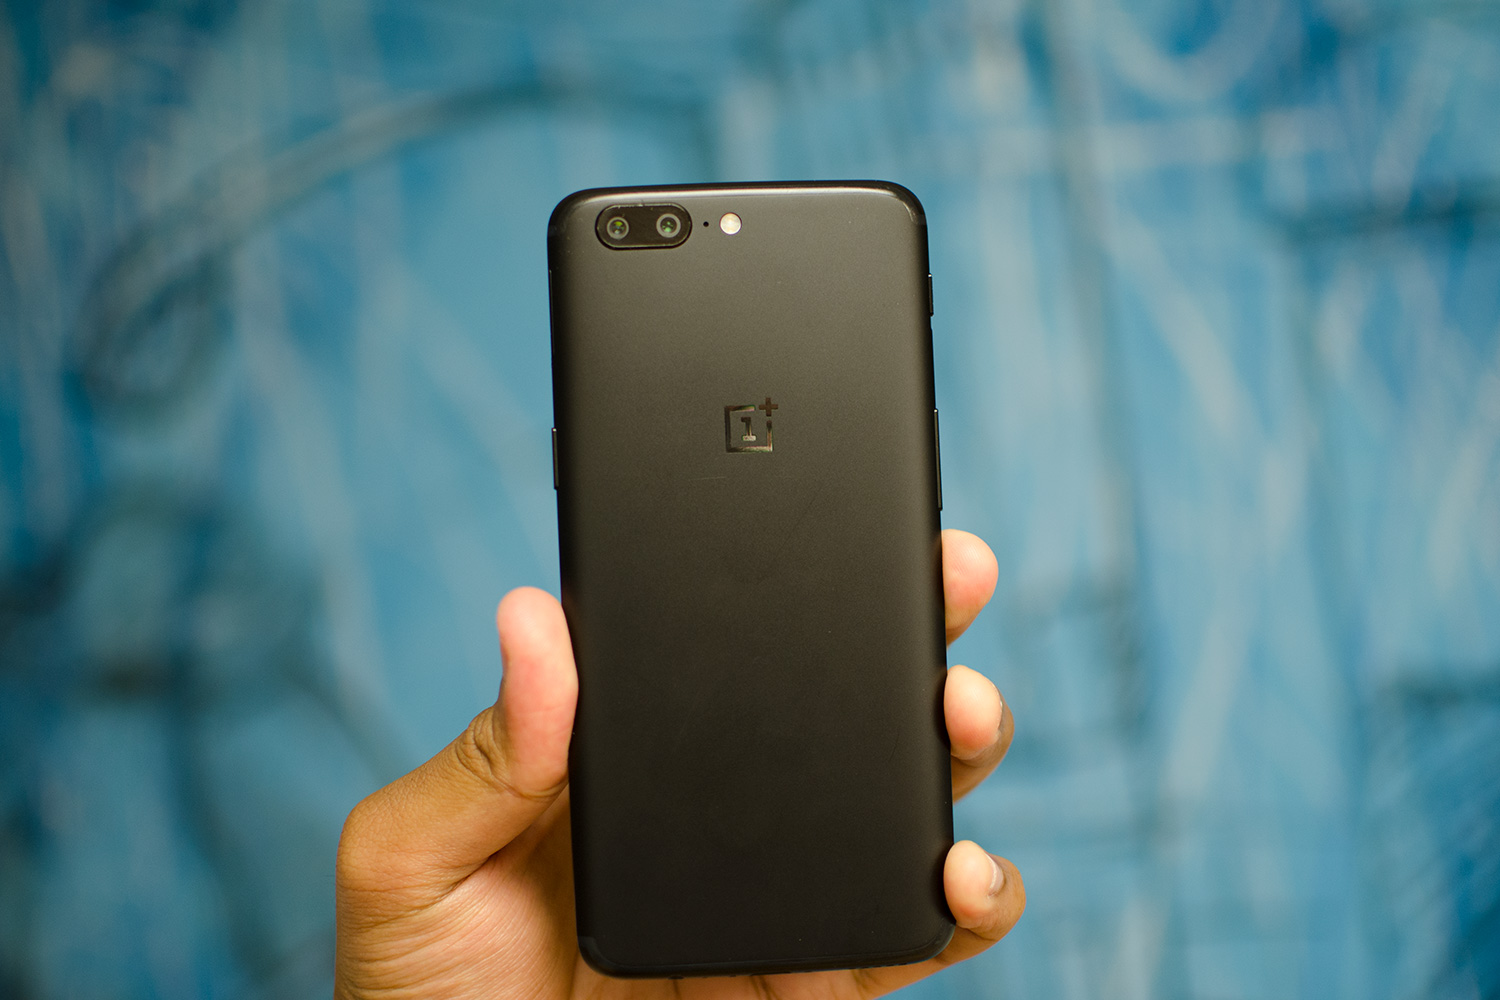 oneplus-5-in-hand